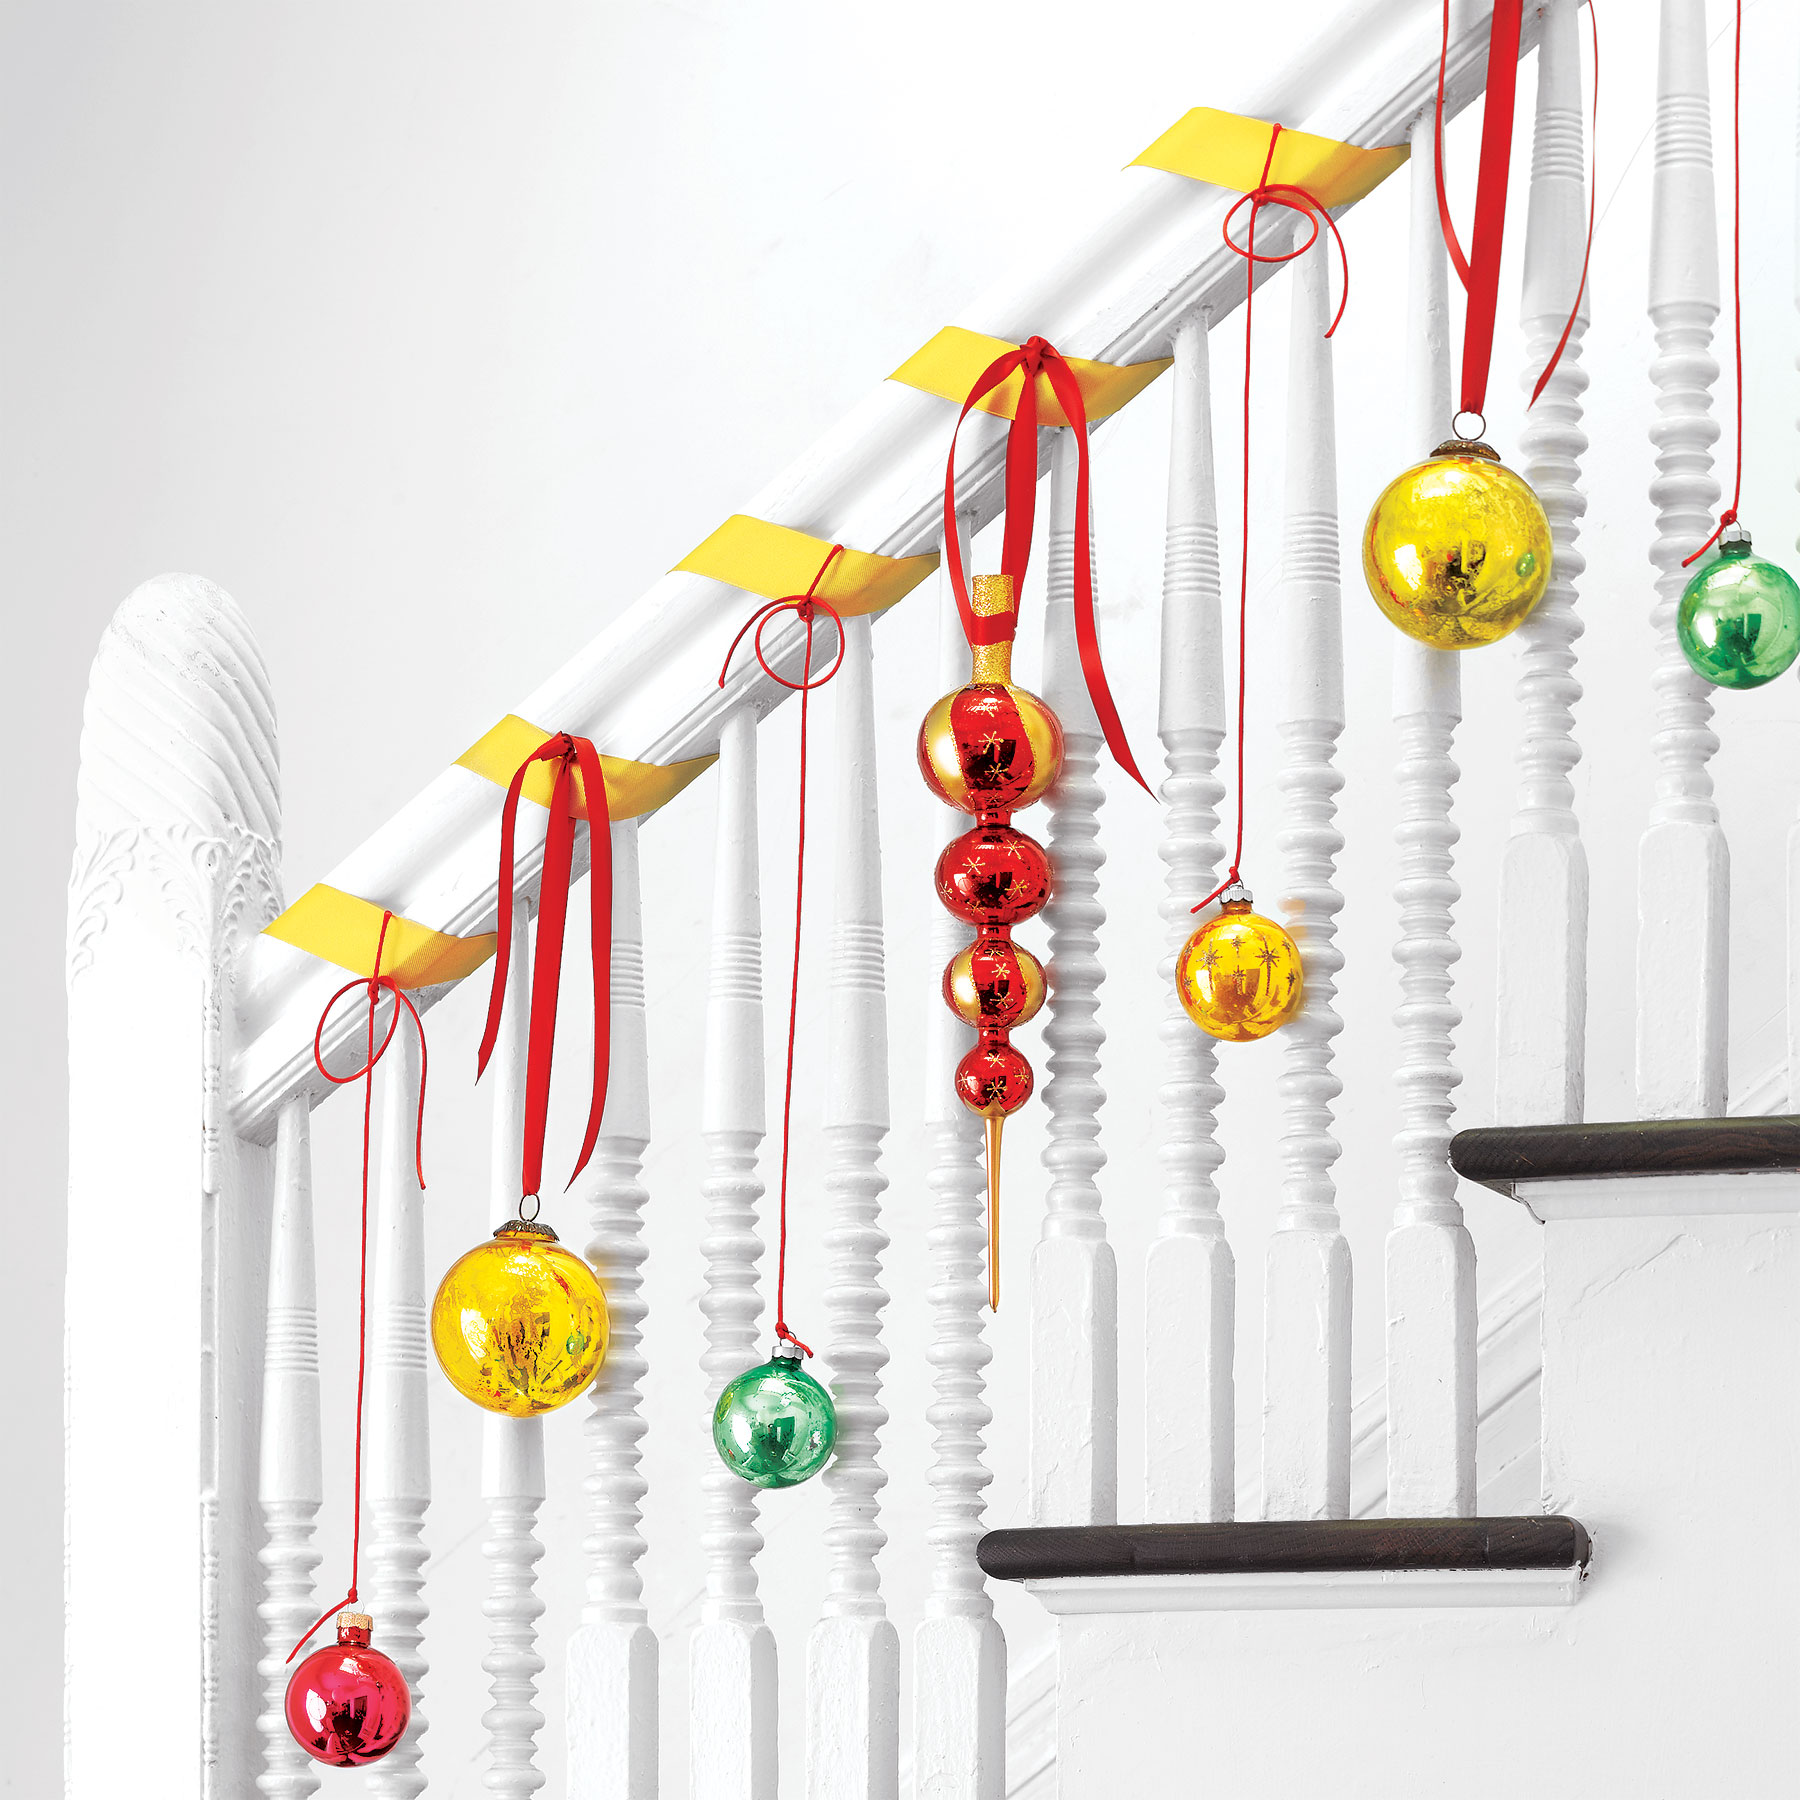 Fast Holiday Decor Ideas, Ornaments on Stair Banister